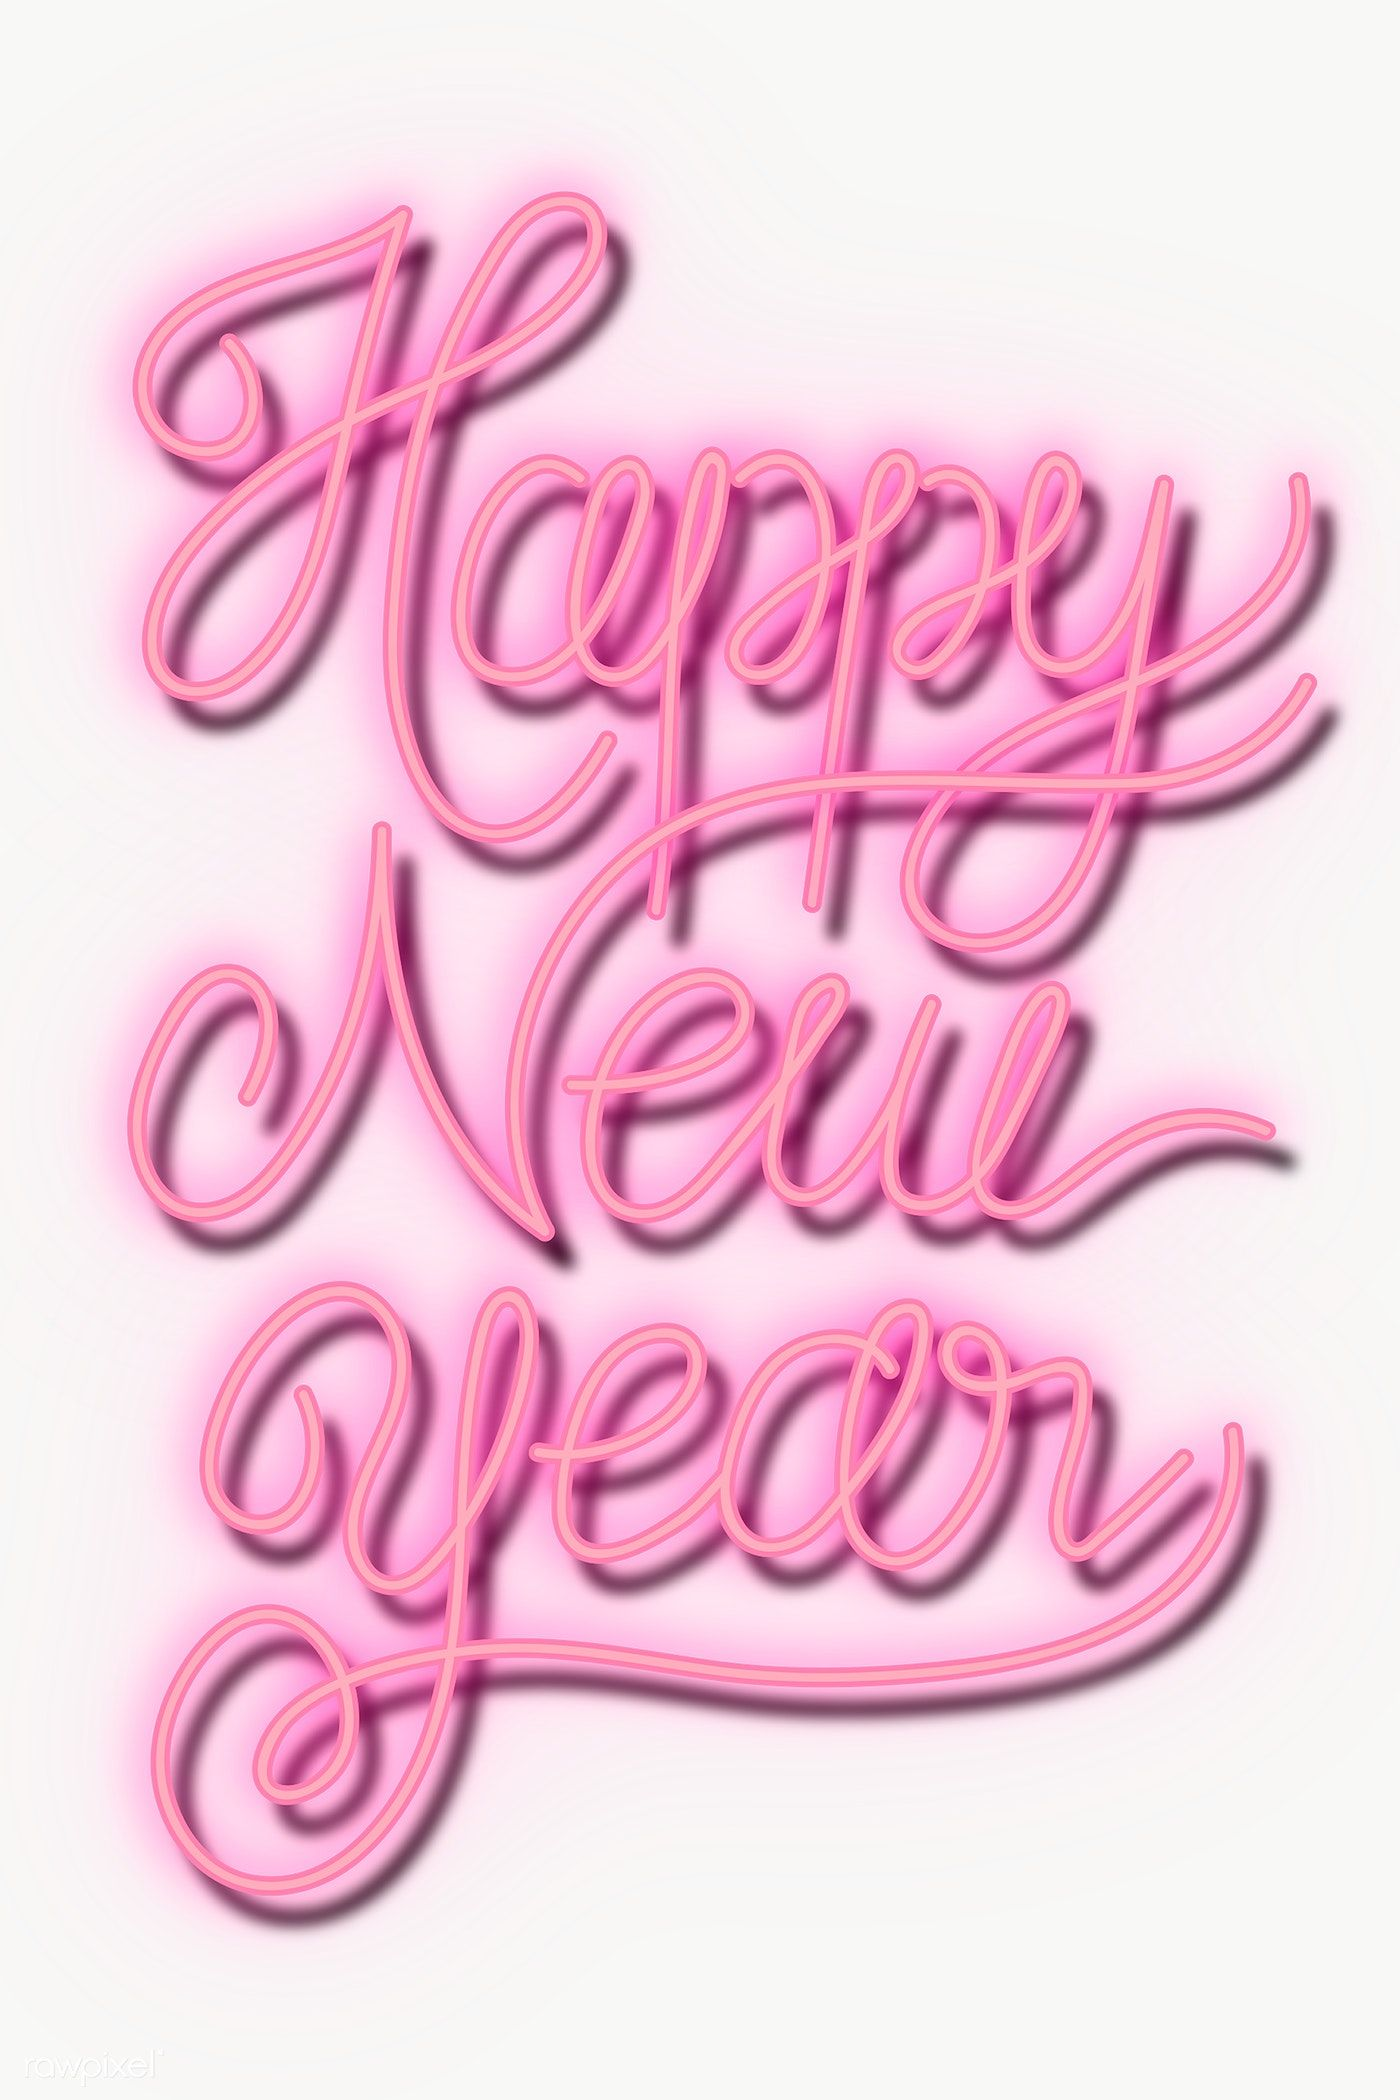 Happy New Year 2020 Transparent Png Free Image By Rawpixel Com Ningzk V Happy New Year Pictures Happy New Year Fireworks New Year Images